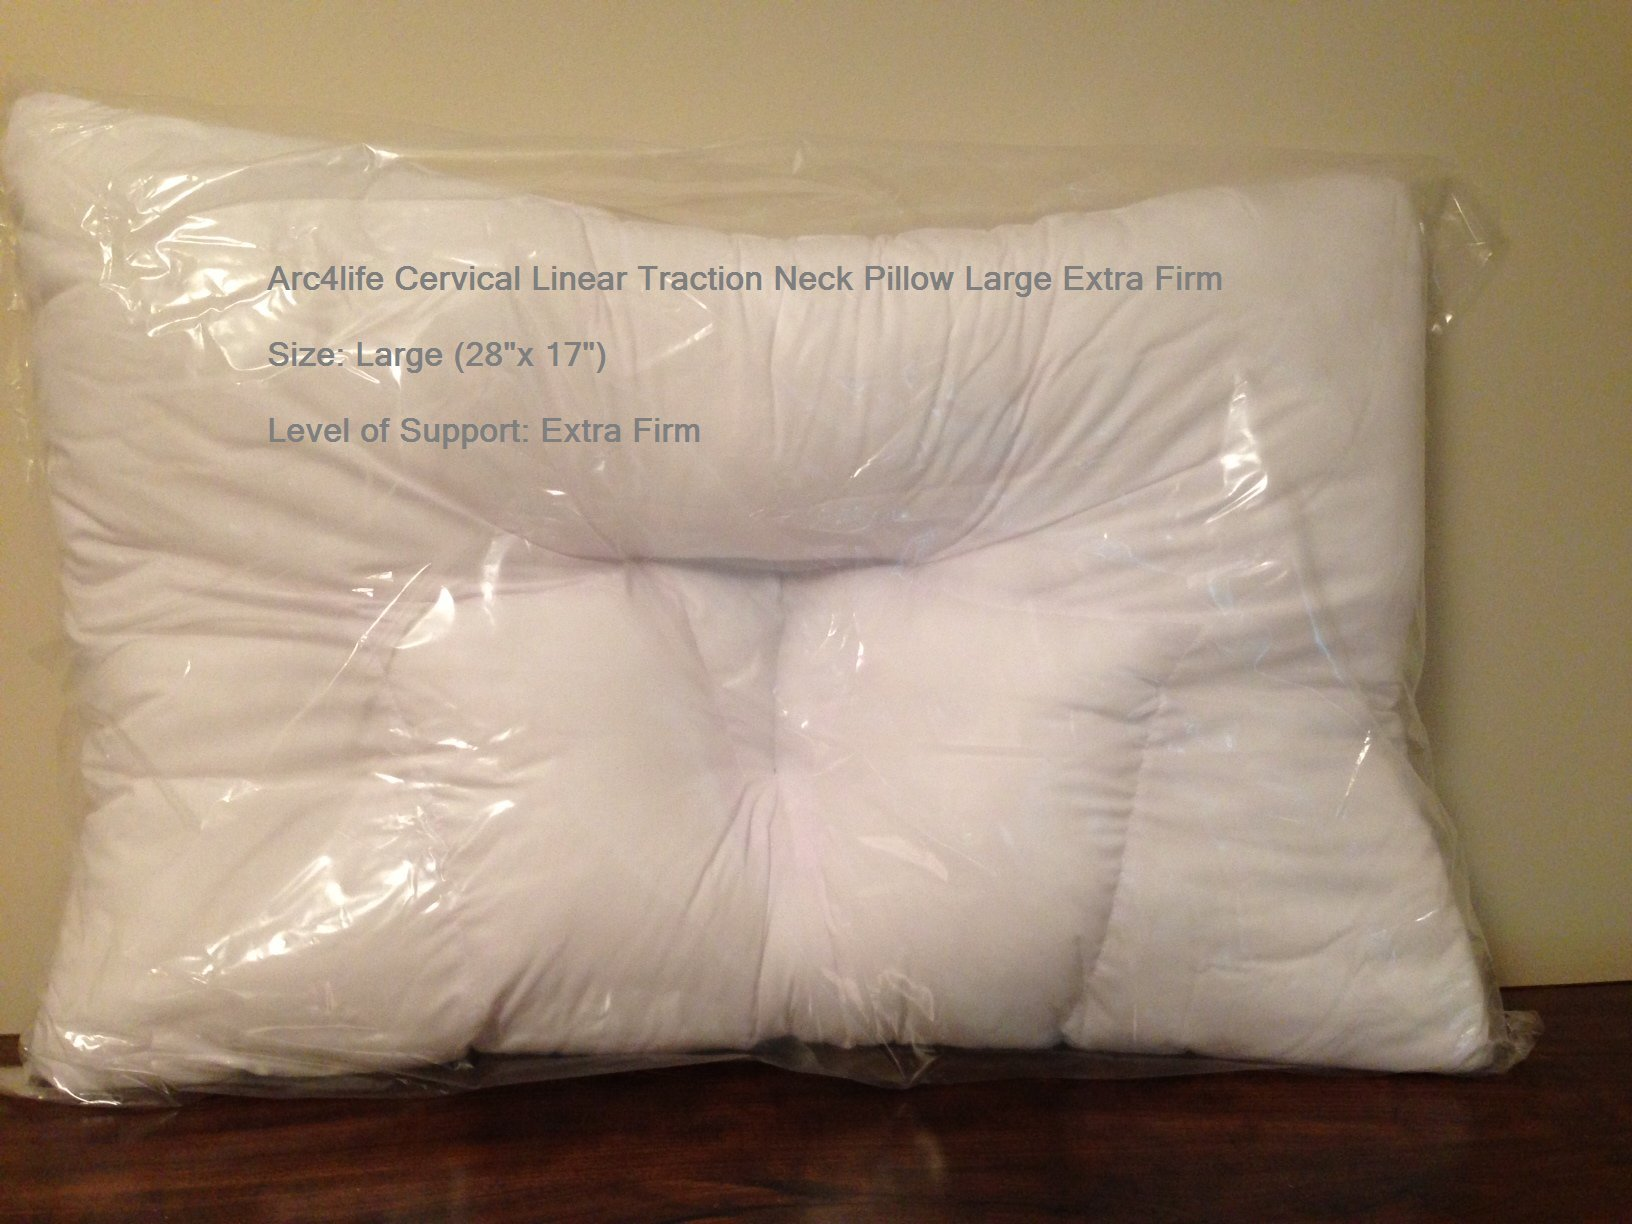 Arc4life Cervical Linear Traction Neck Pillow Large Extra Firm